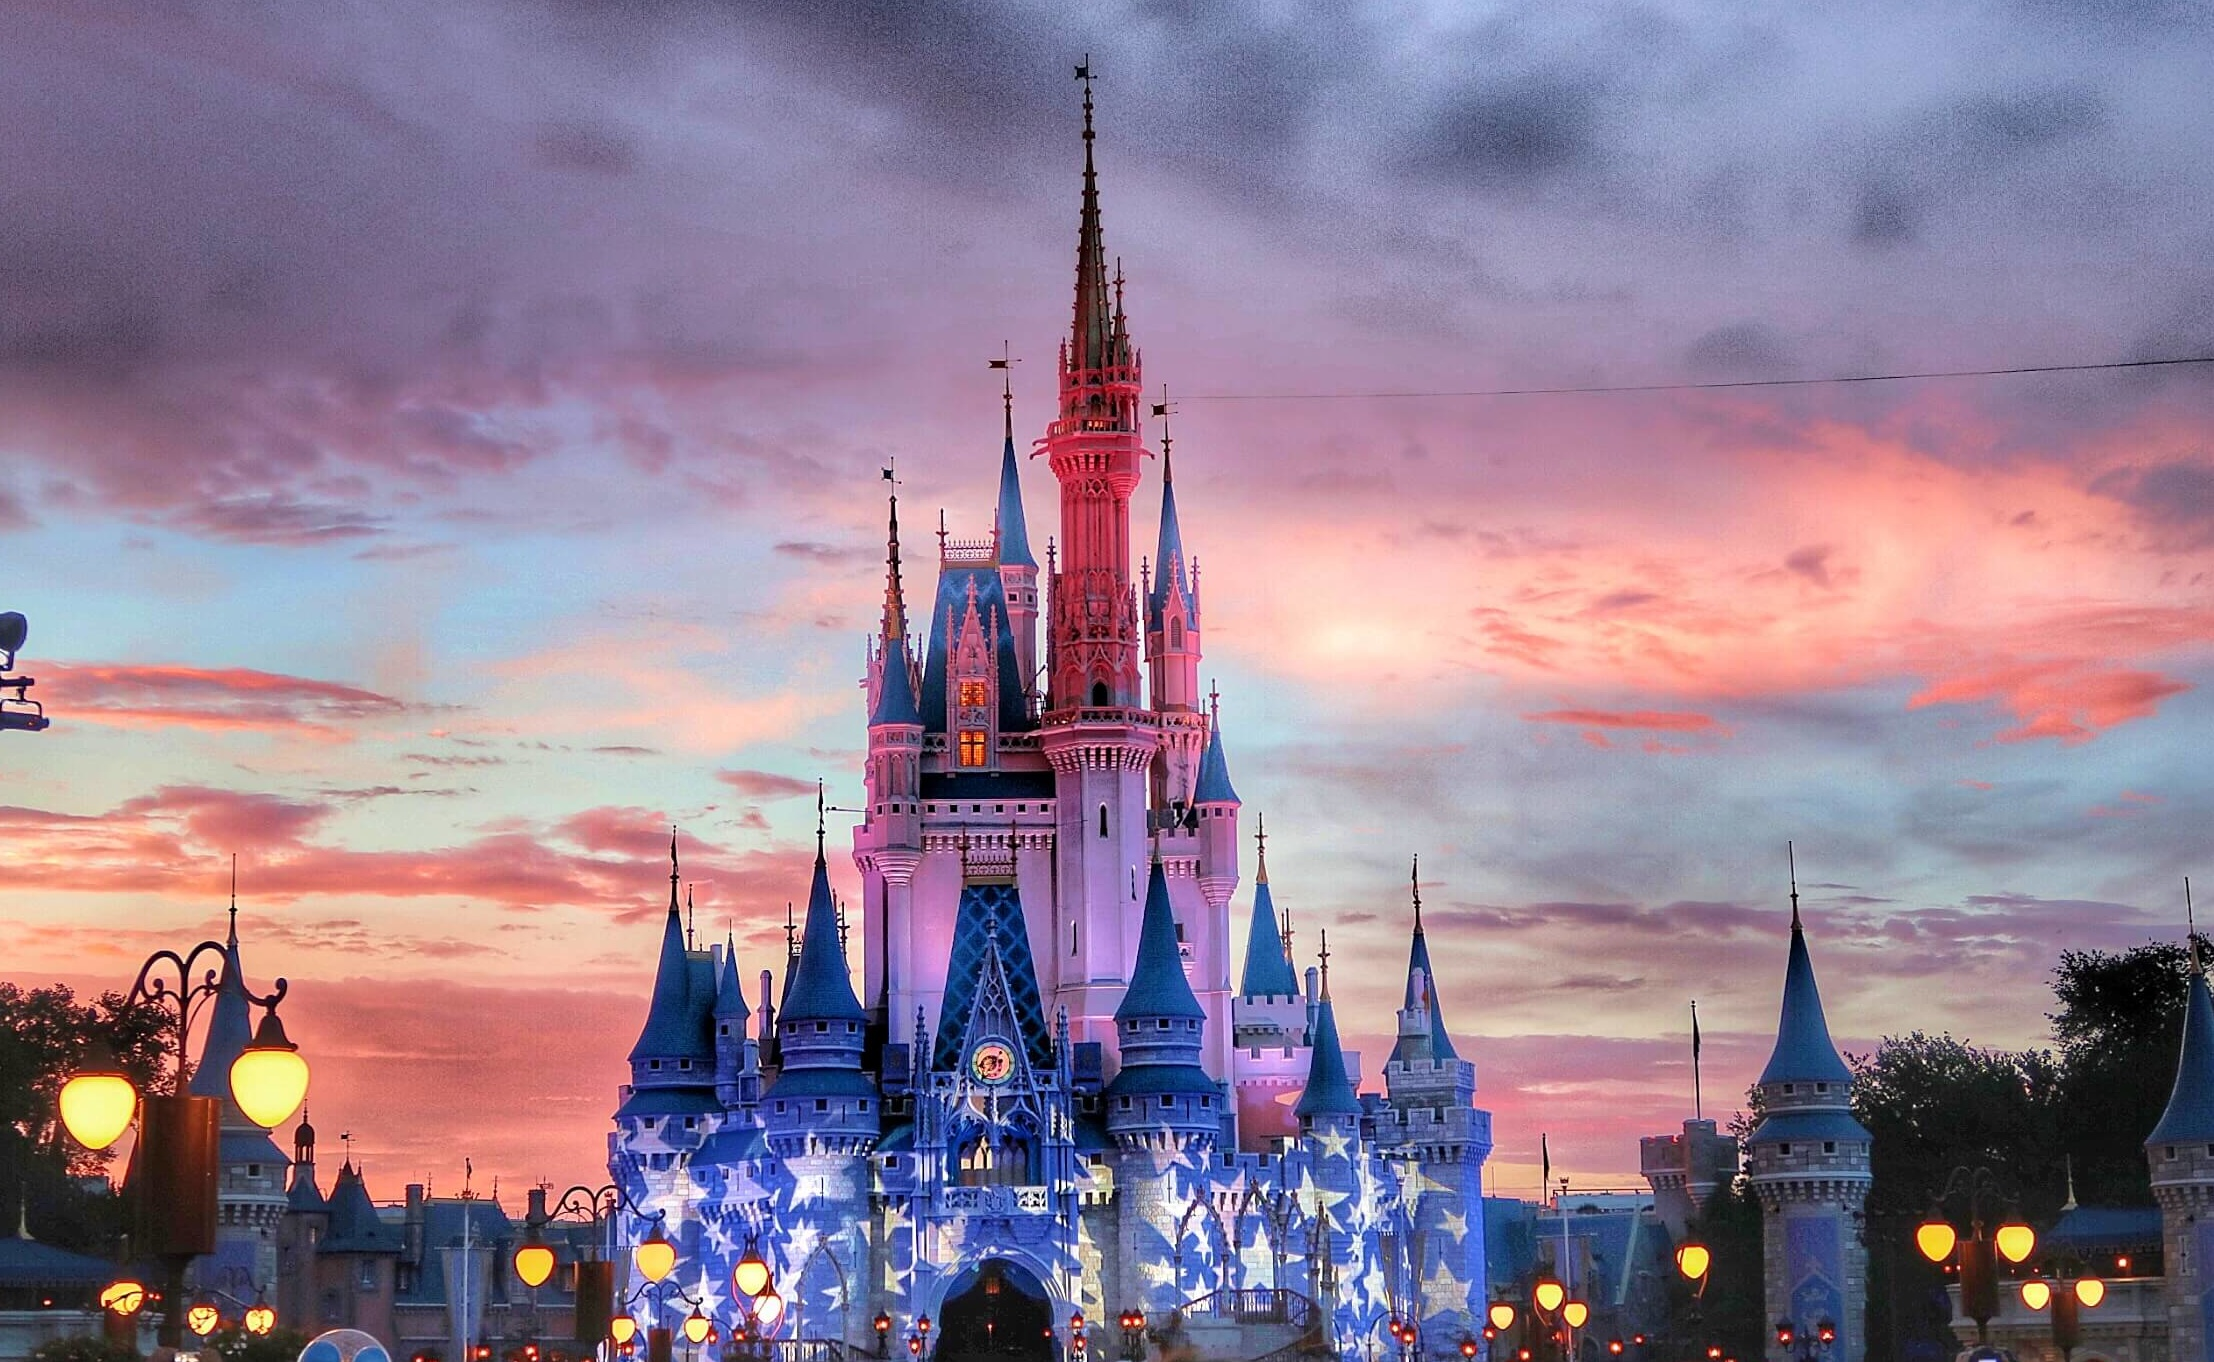 Today we will tell you how to download any movie, TV series, or cartoon from Disney using the Free Disney Plus Download.